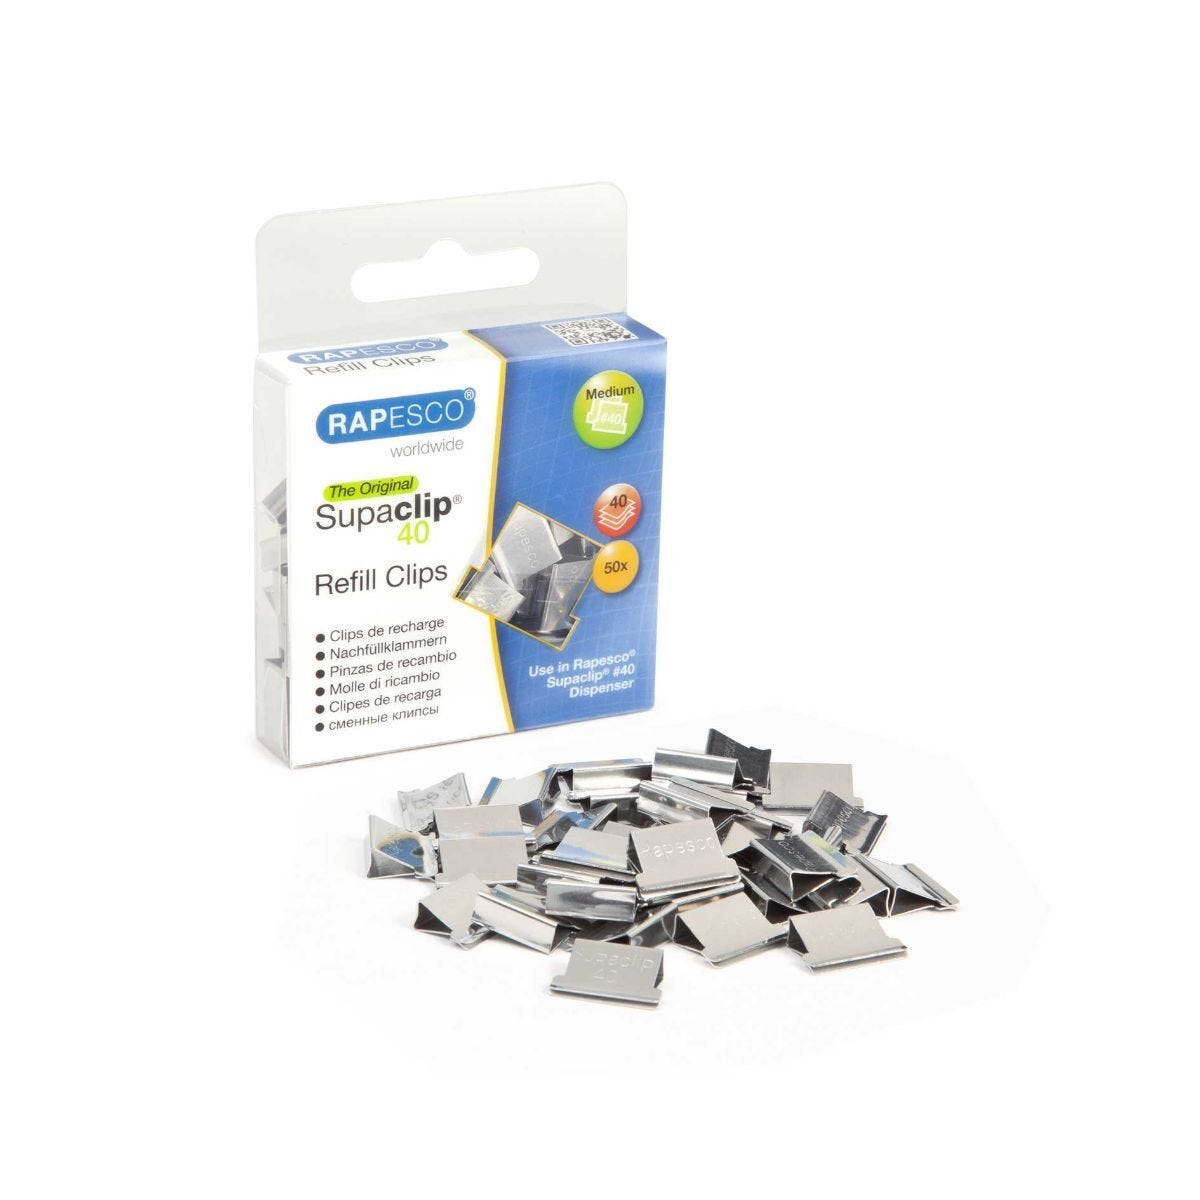 Rapesco Supaclips Pack of 50